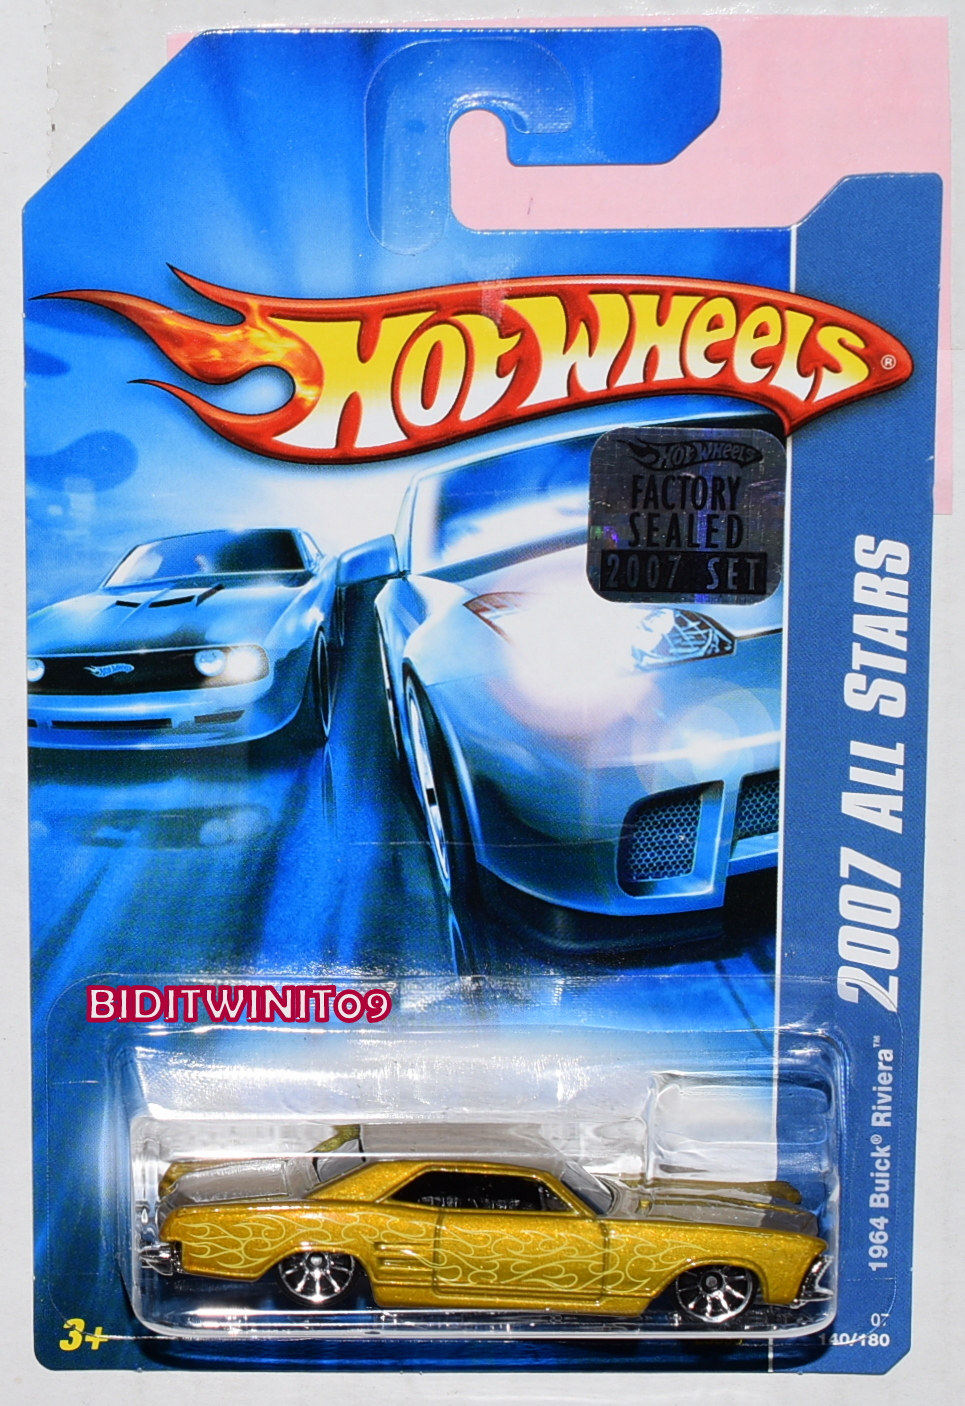 HOT WHEELS 2007 ALL STARS 1964 BUICK RIVIERA GOLD FACTORY SEALED